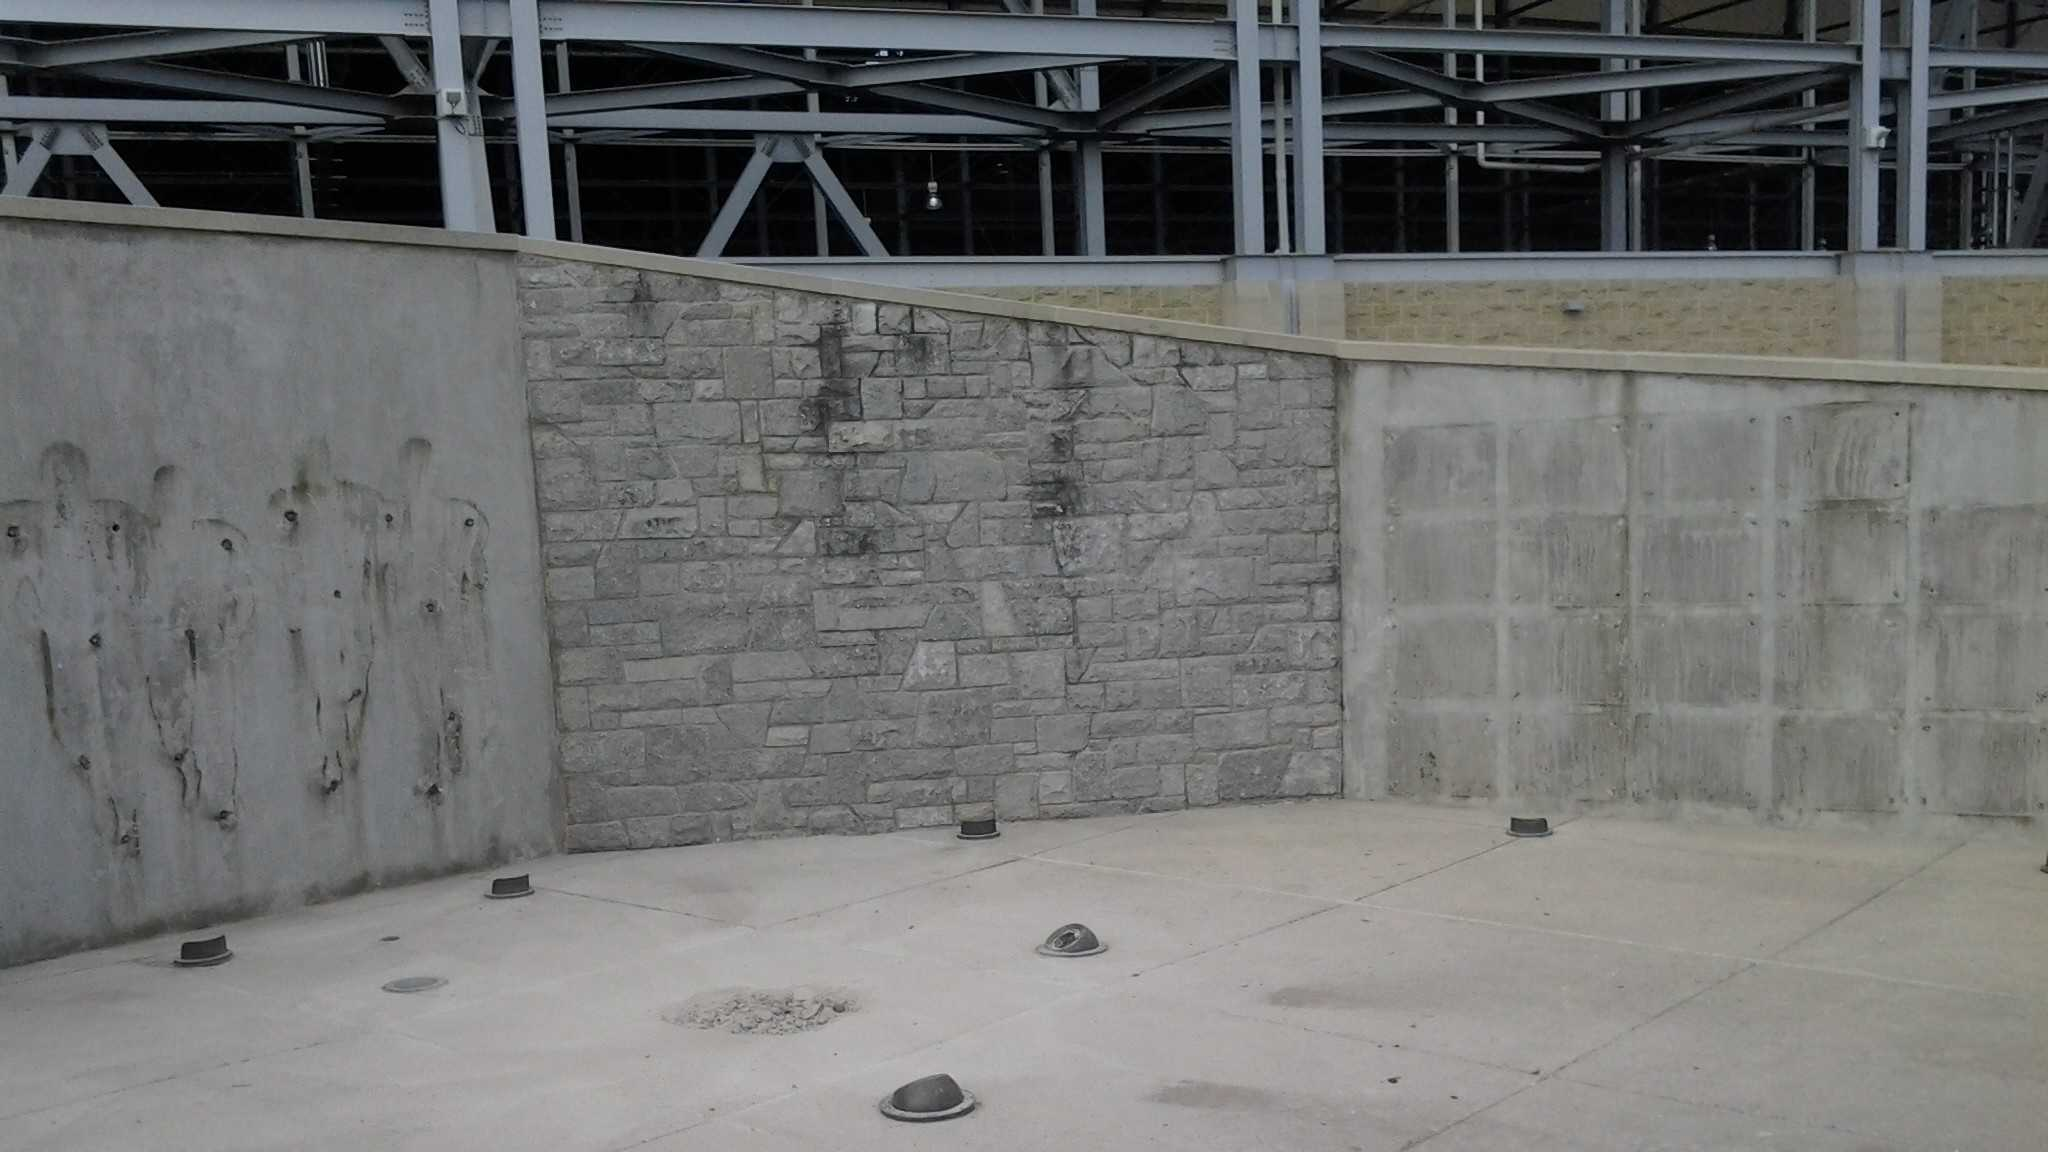 The spot where Joe Paterno's statue once stood is now bare after Penn State University's decision to remove it.